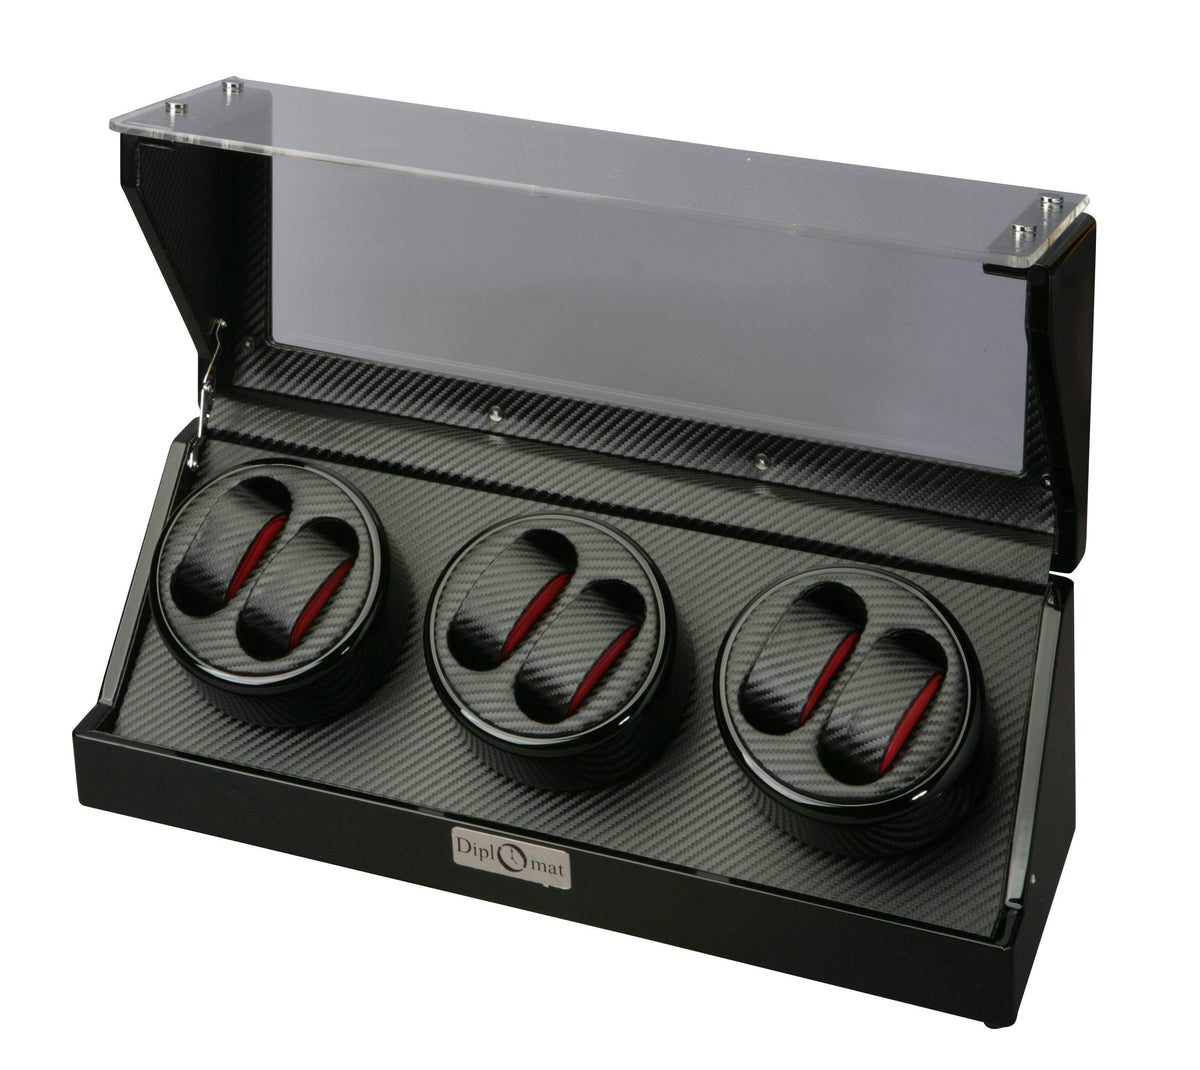 Diplomat Gothica Black Wood Six Watch Winder with Black Carbon Fiber Pattern Interior and Smart Internal Bi-Directional Timer Control Armadillo Safe and Vault